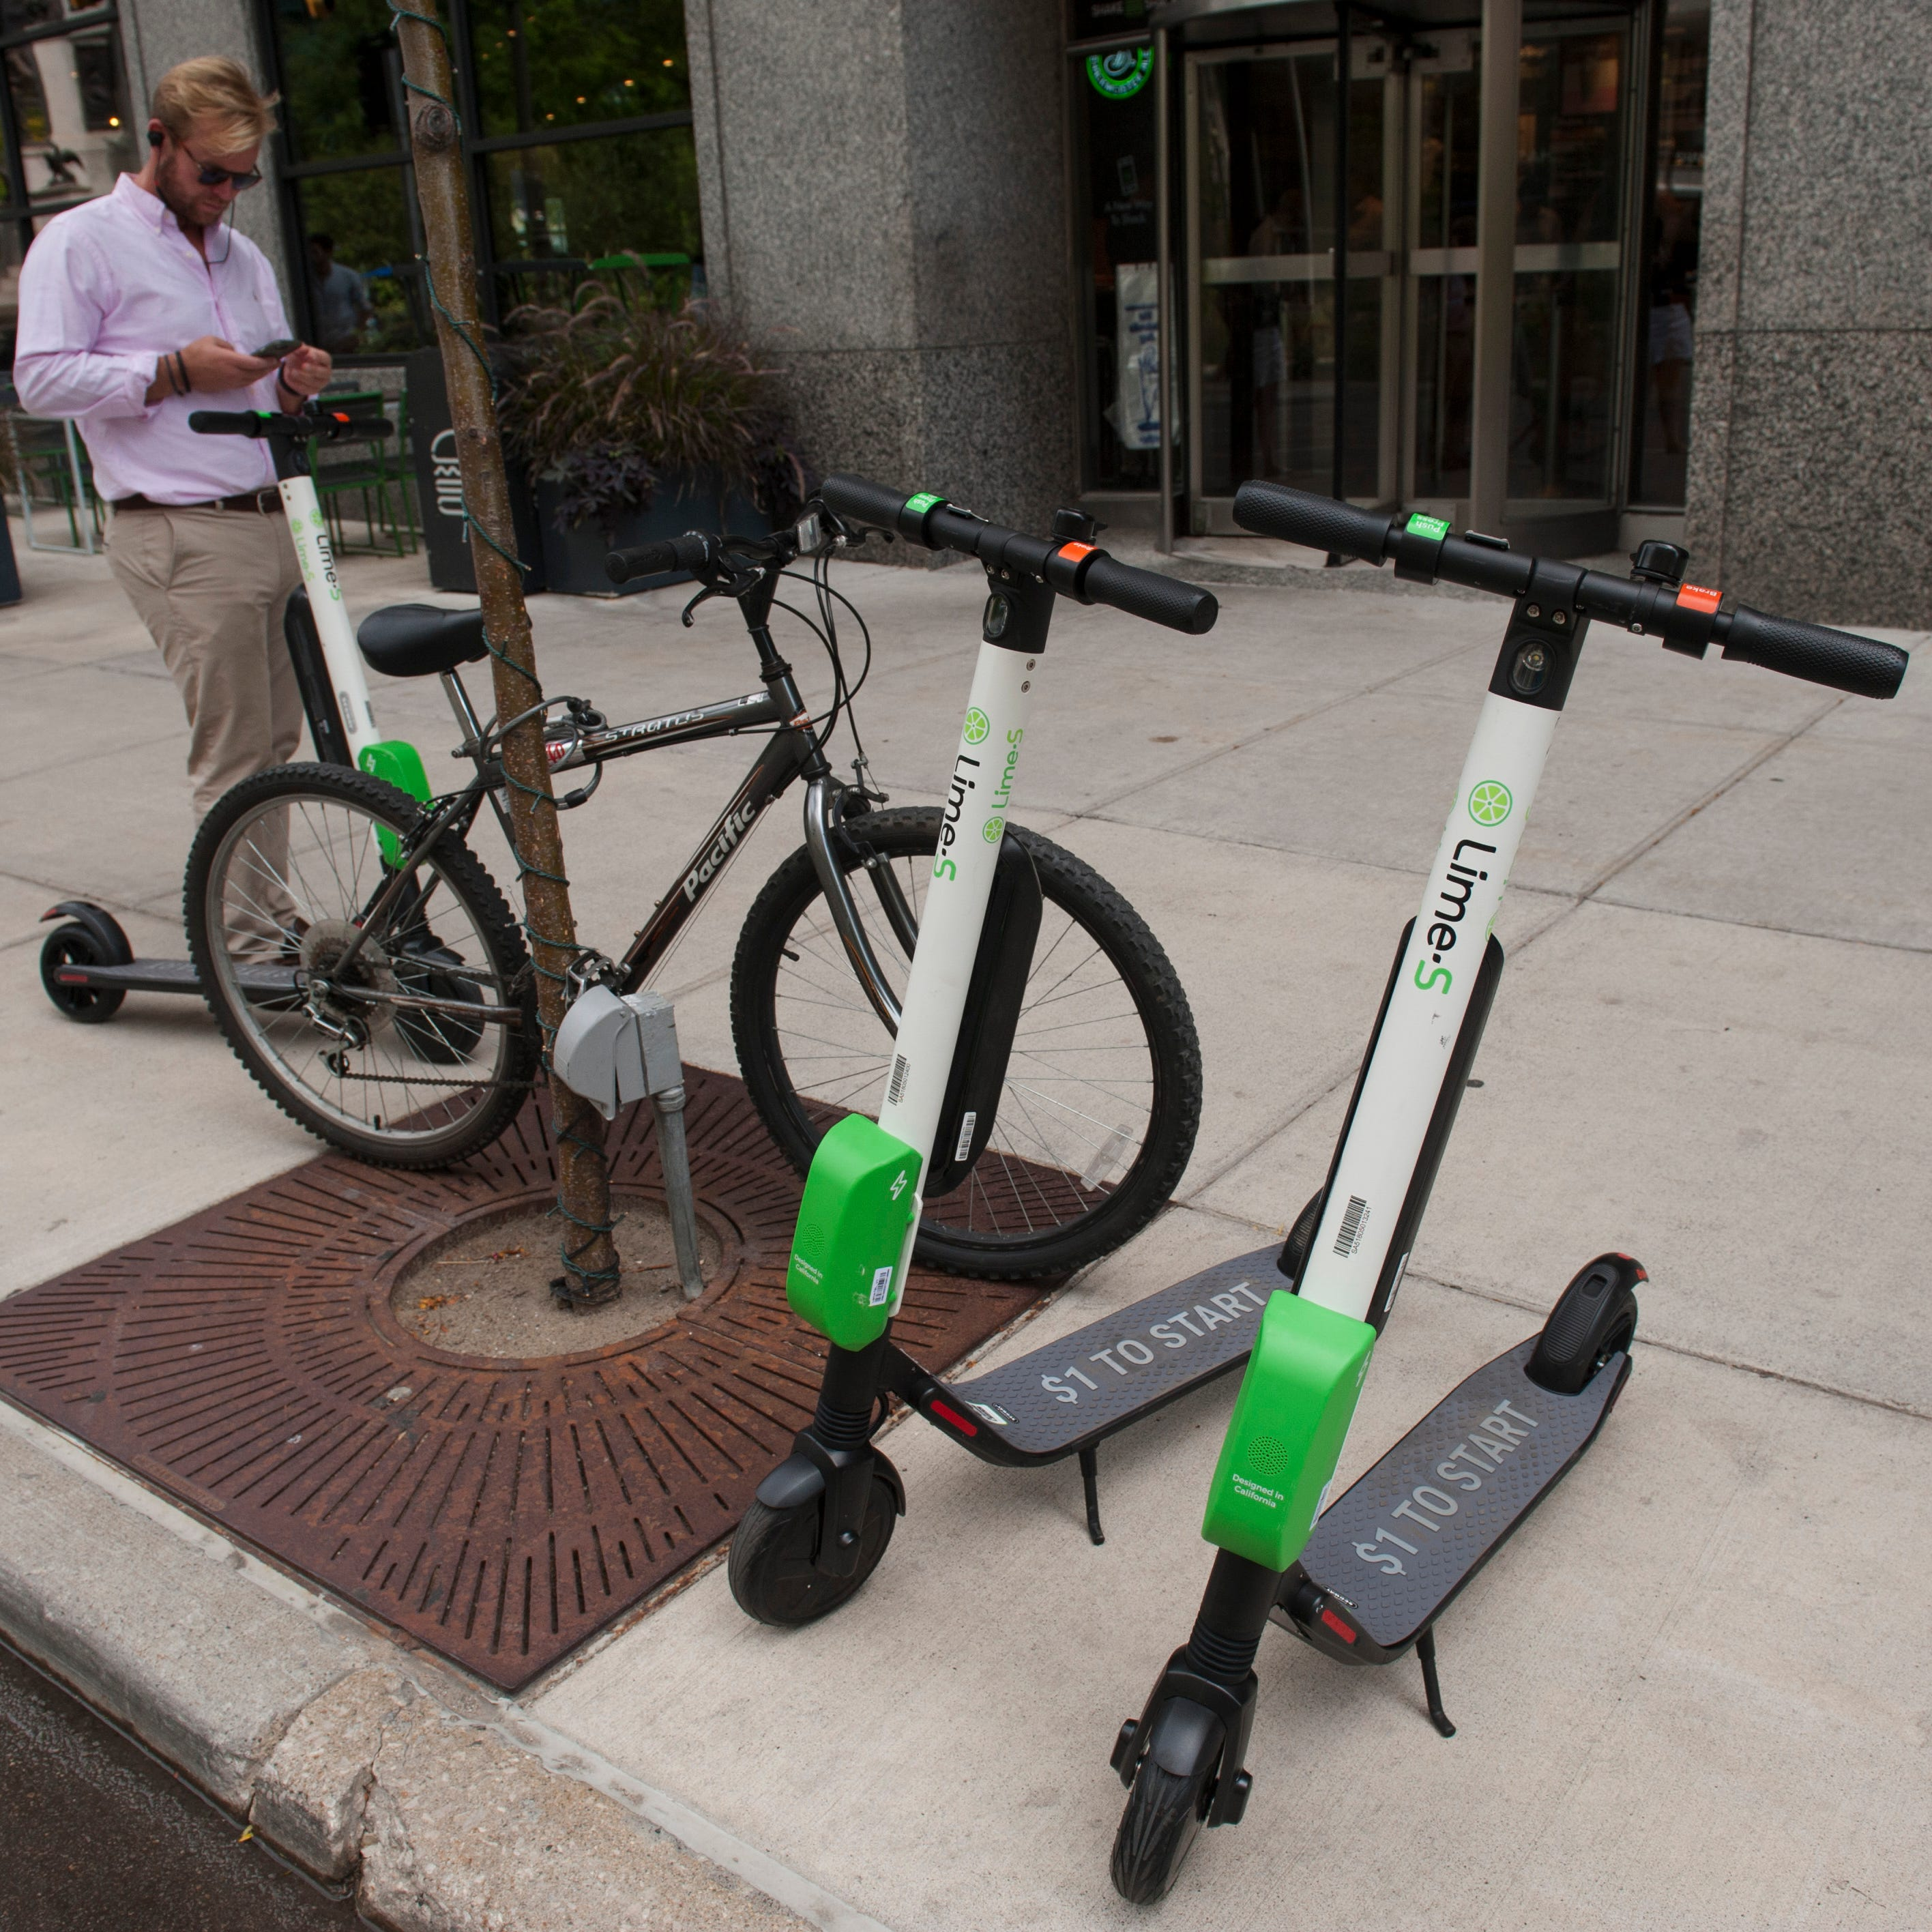 Lime scooters make their return in downtown Detroit